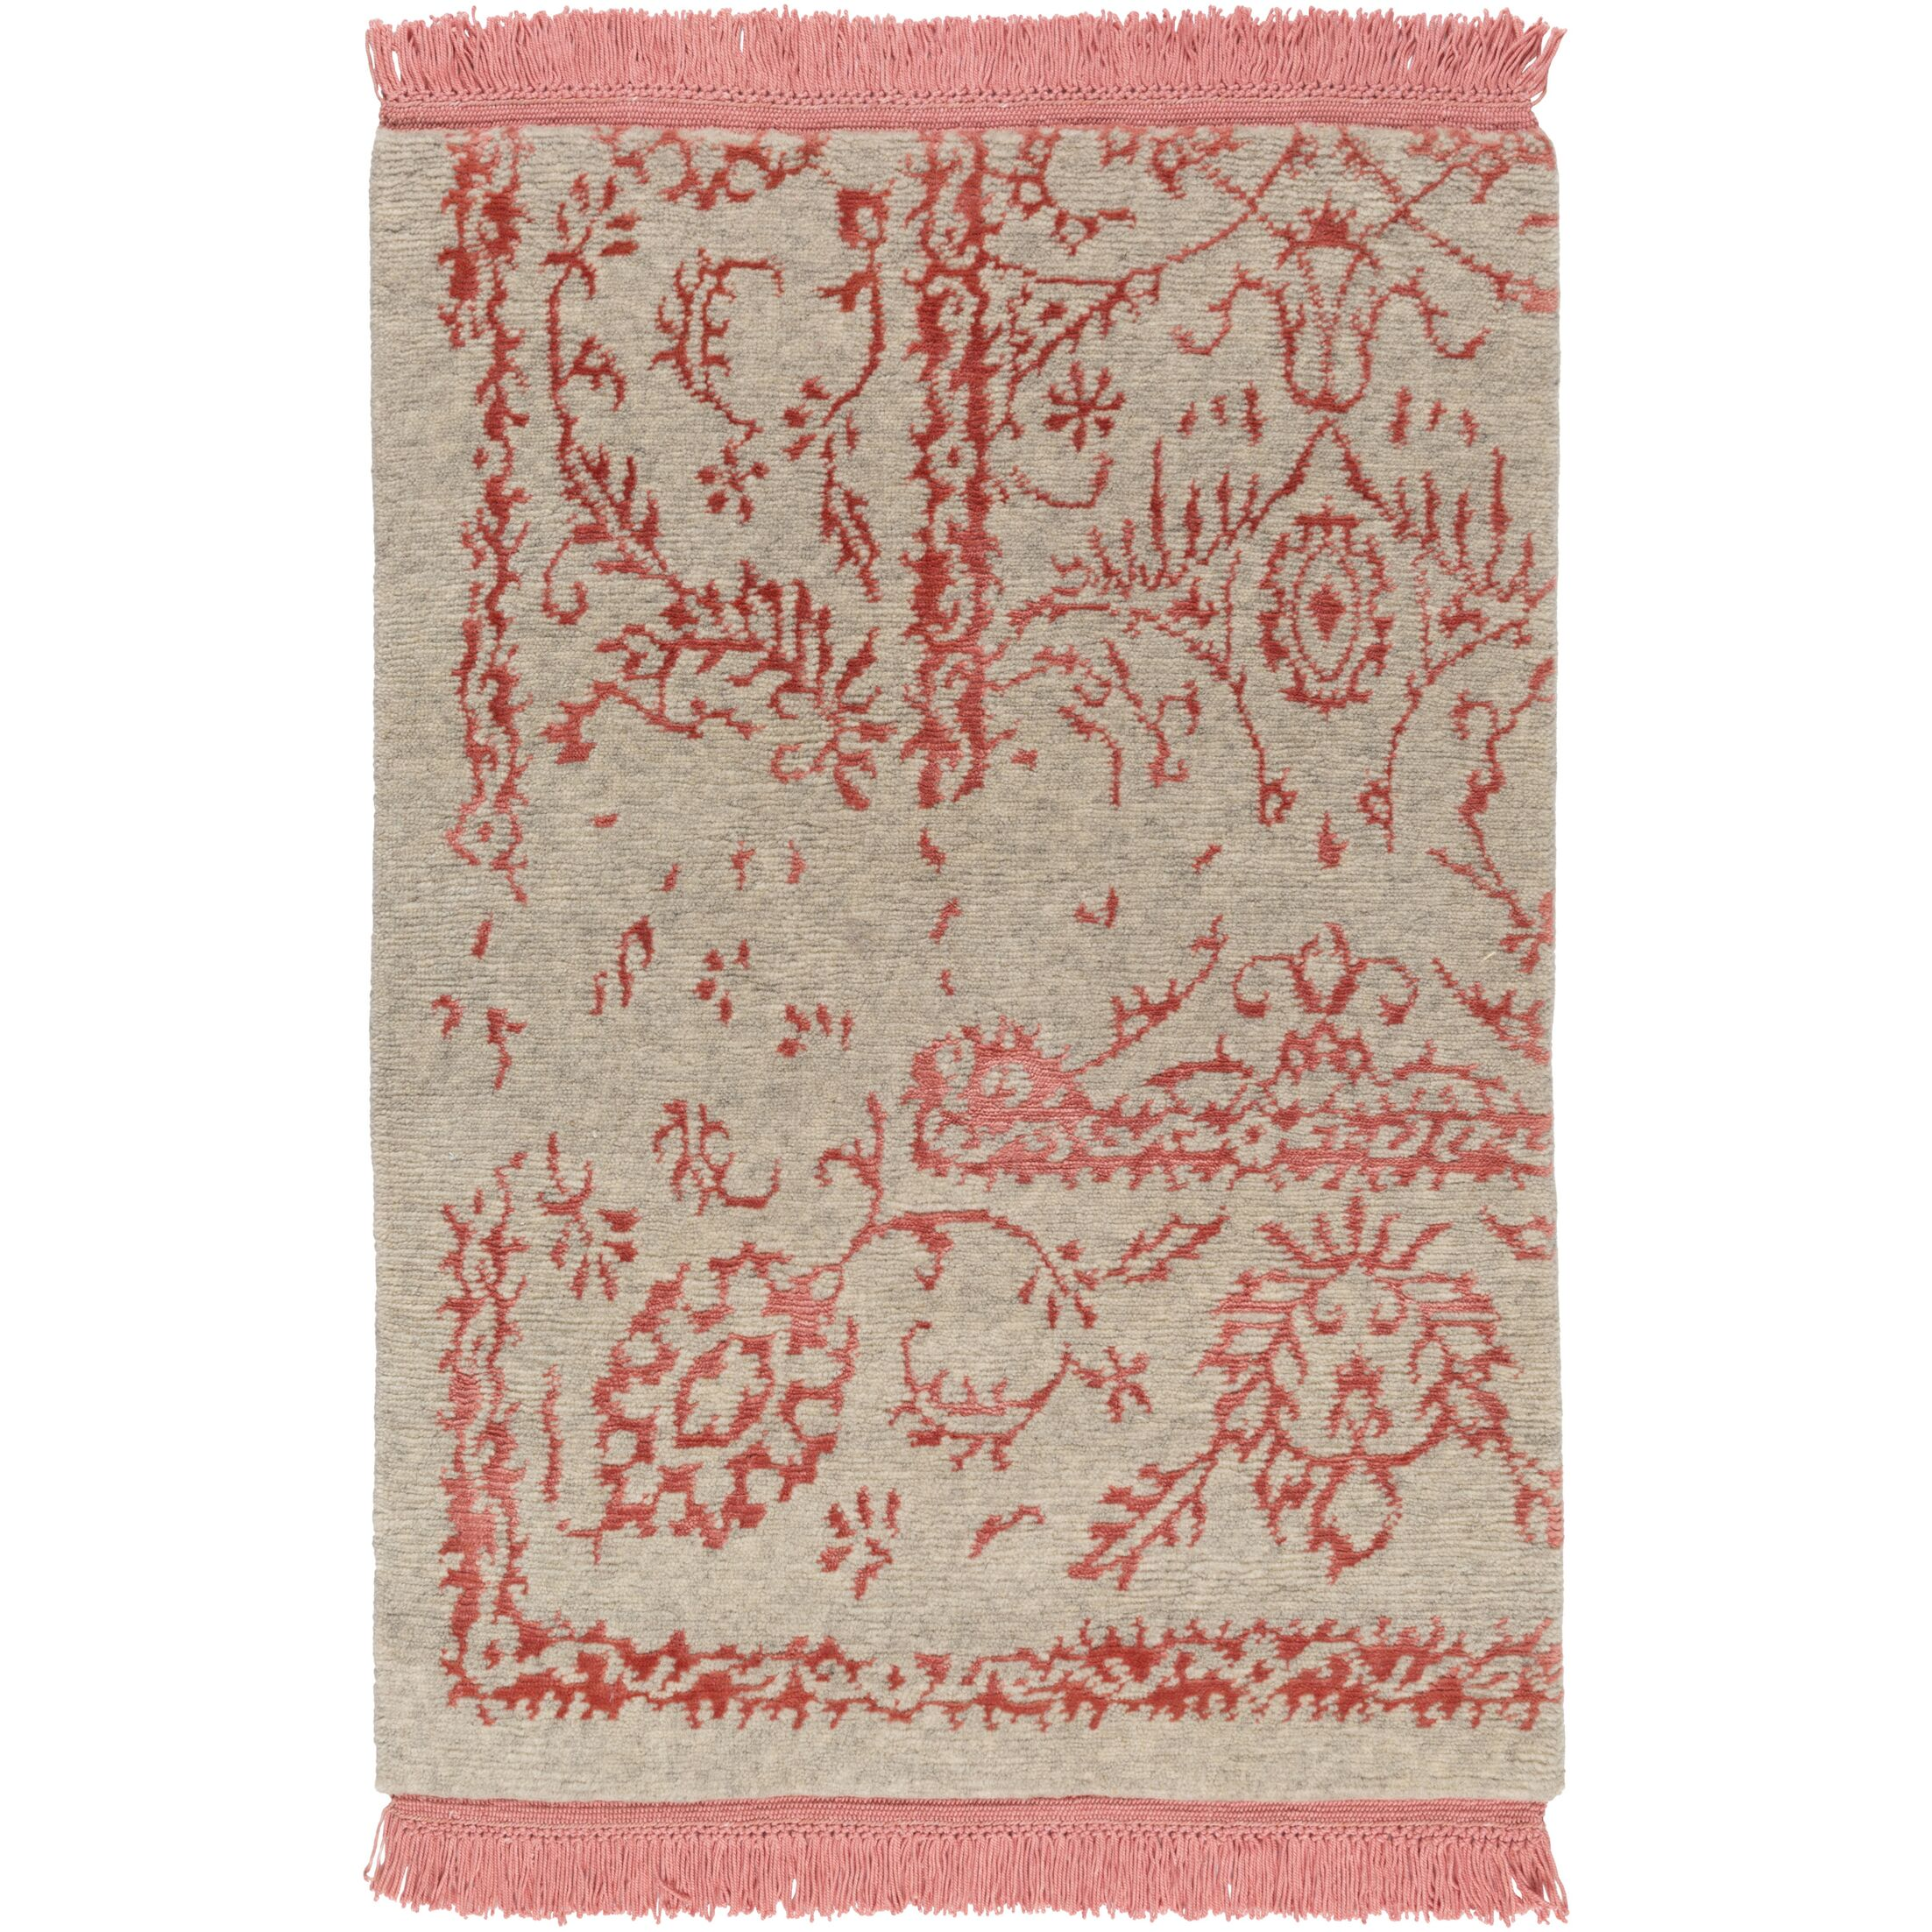 Marwan Hand-Knotted Coral/Khaki Area Rug Rug Size: Rectangle 2' x 4'